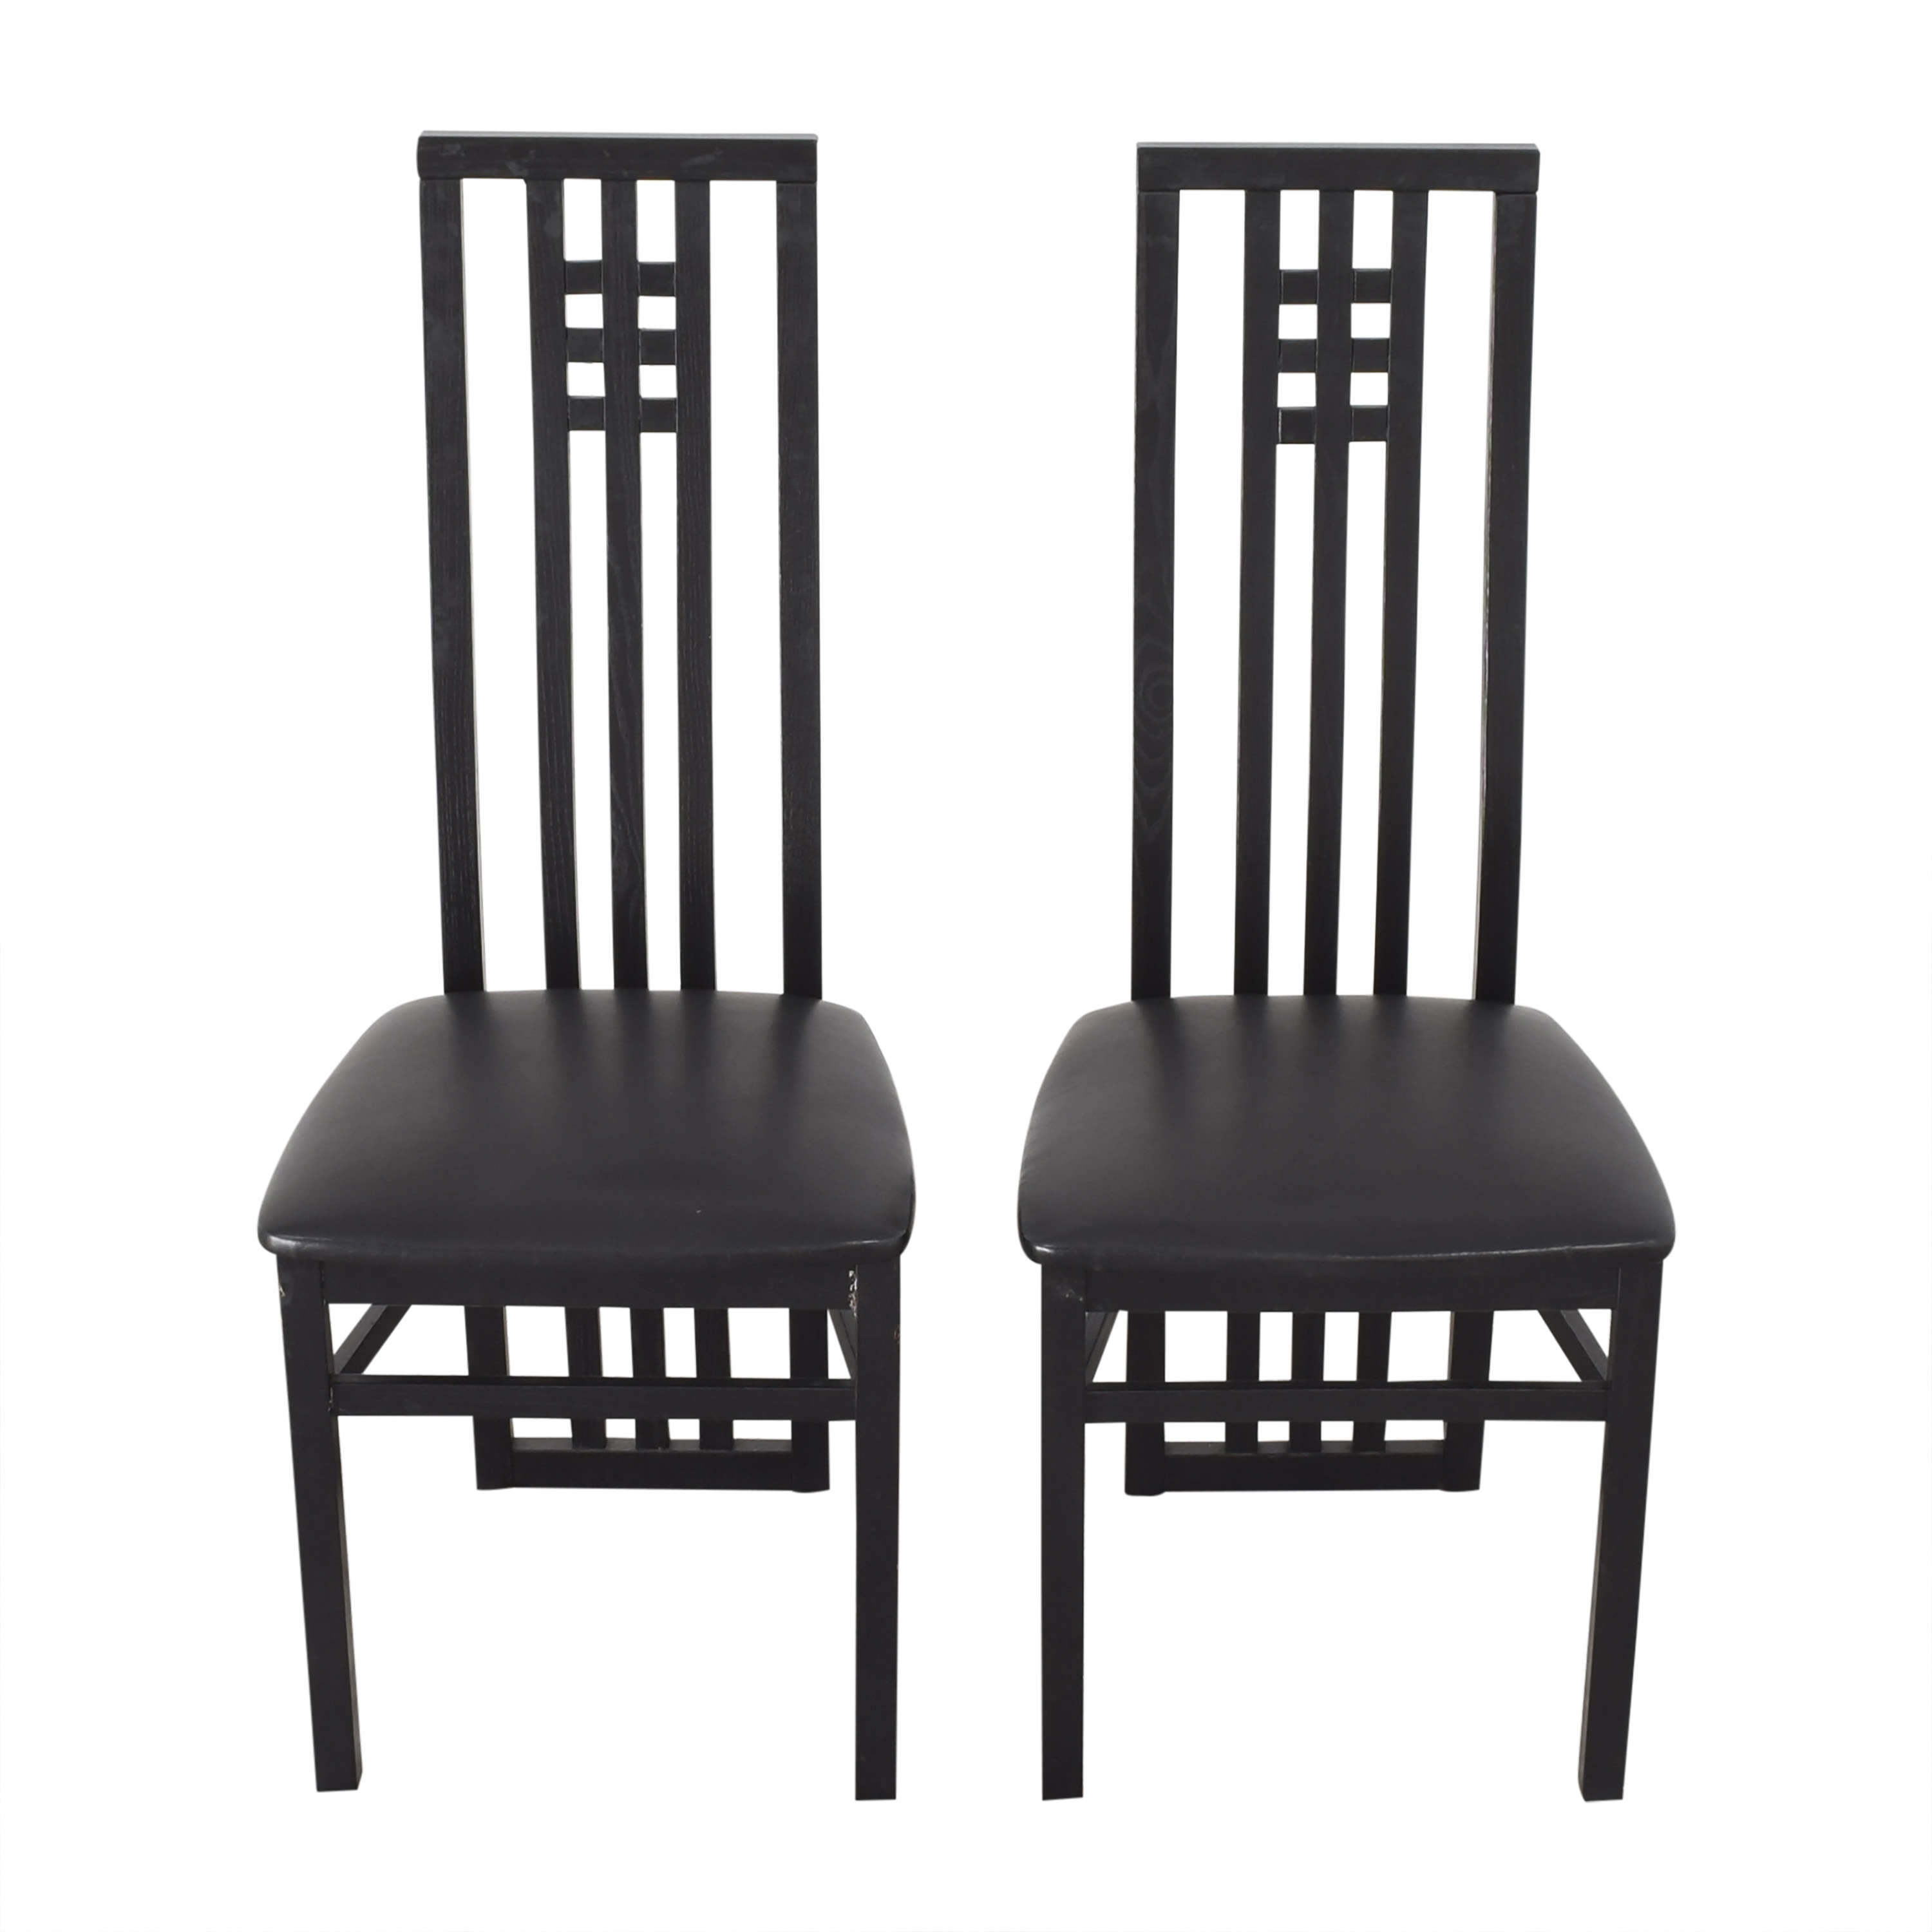 The Conran Shop The Conran Shop Mackintosh-Style Dining Chairs used